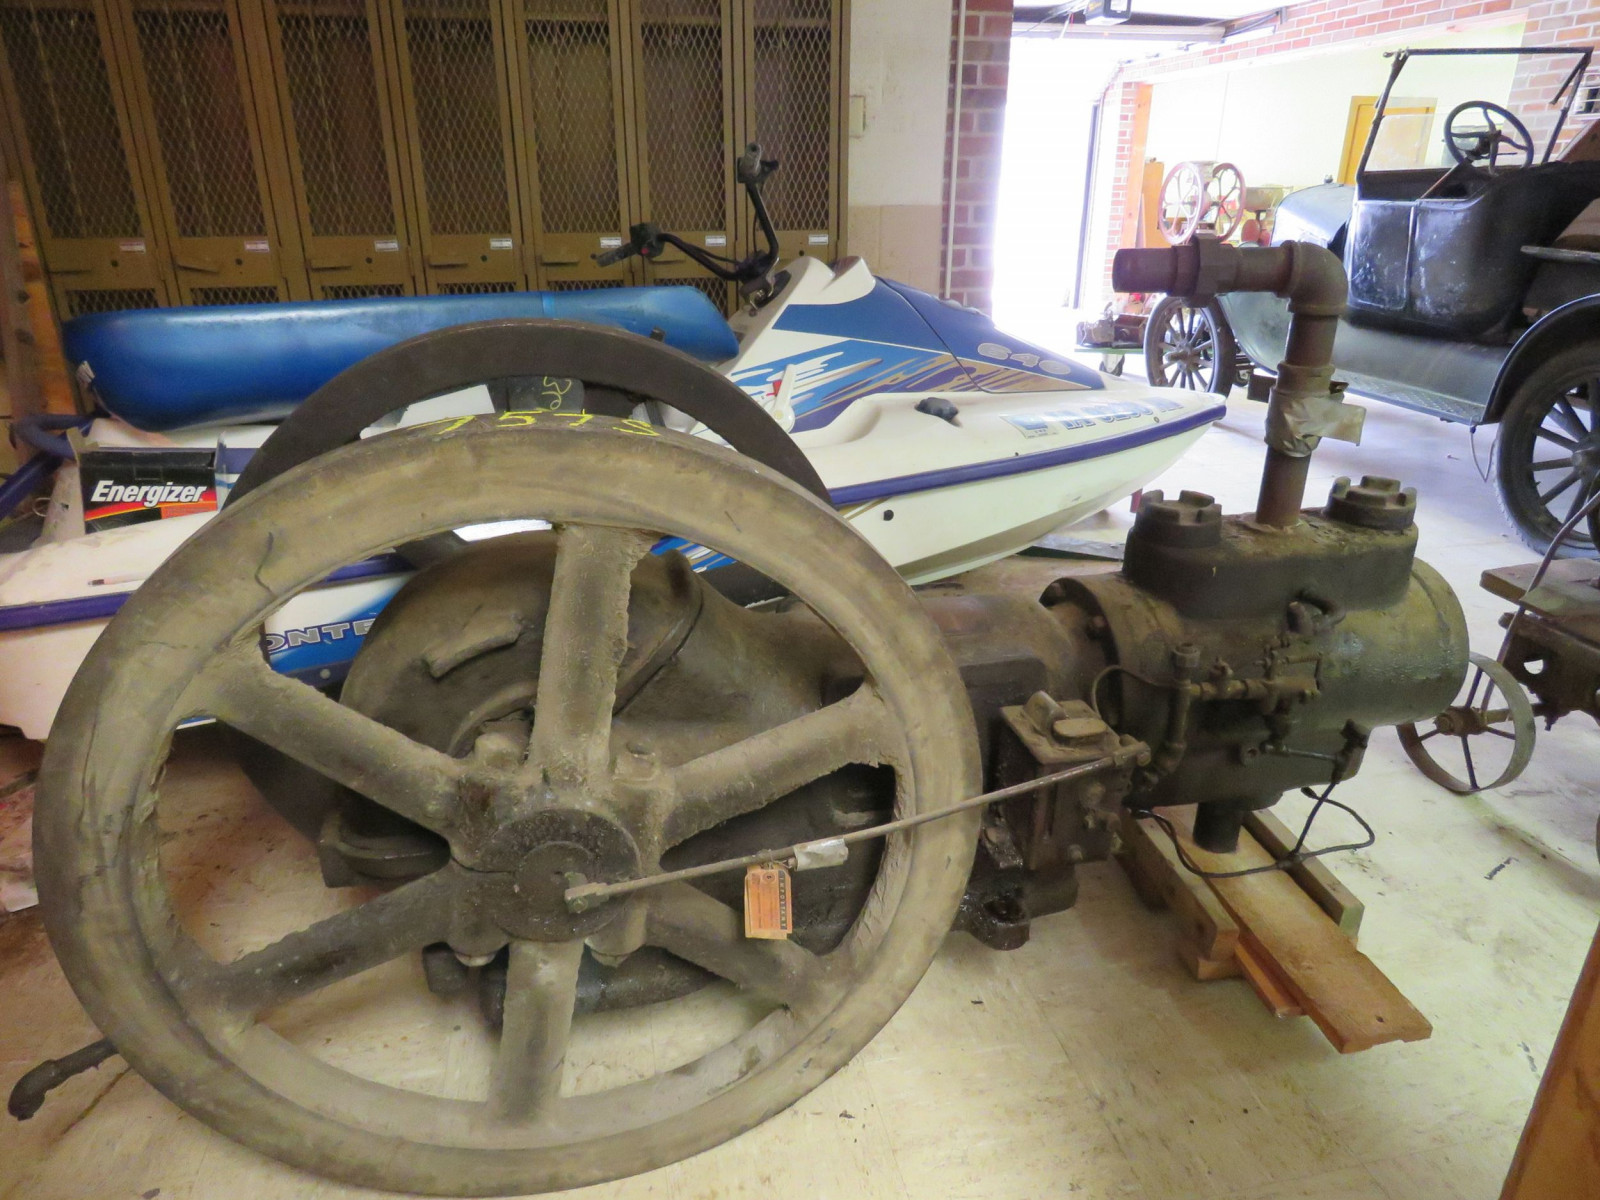 Sullivan Machinery Company Stationary Engine - Image 1